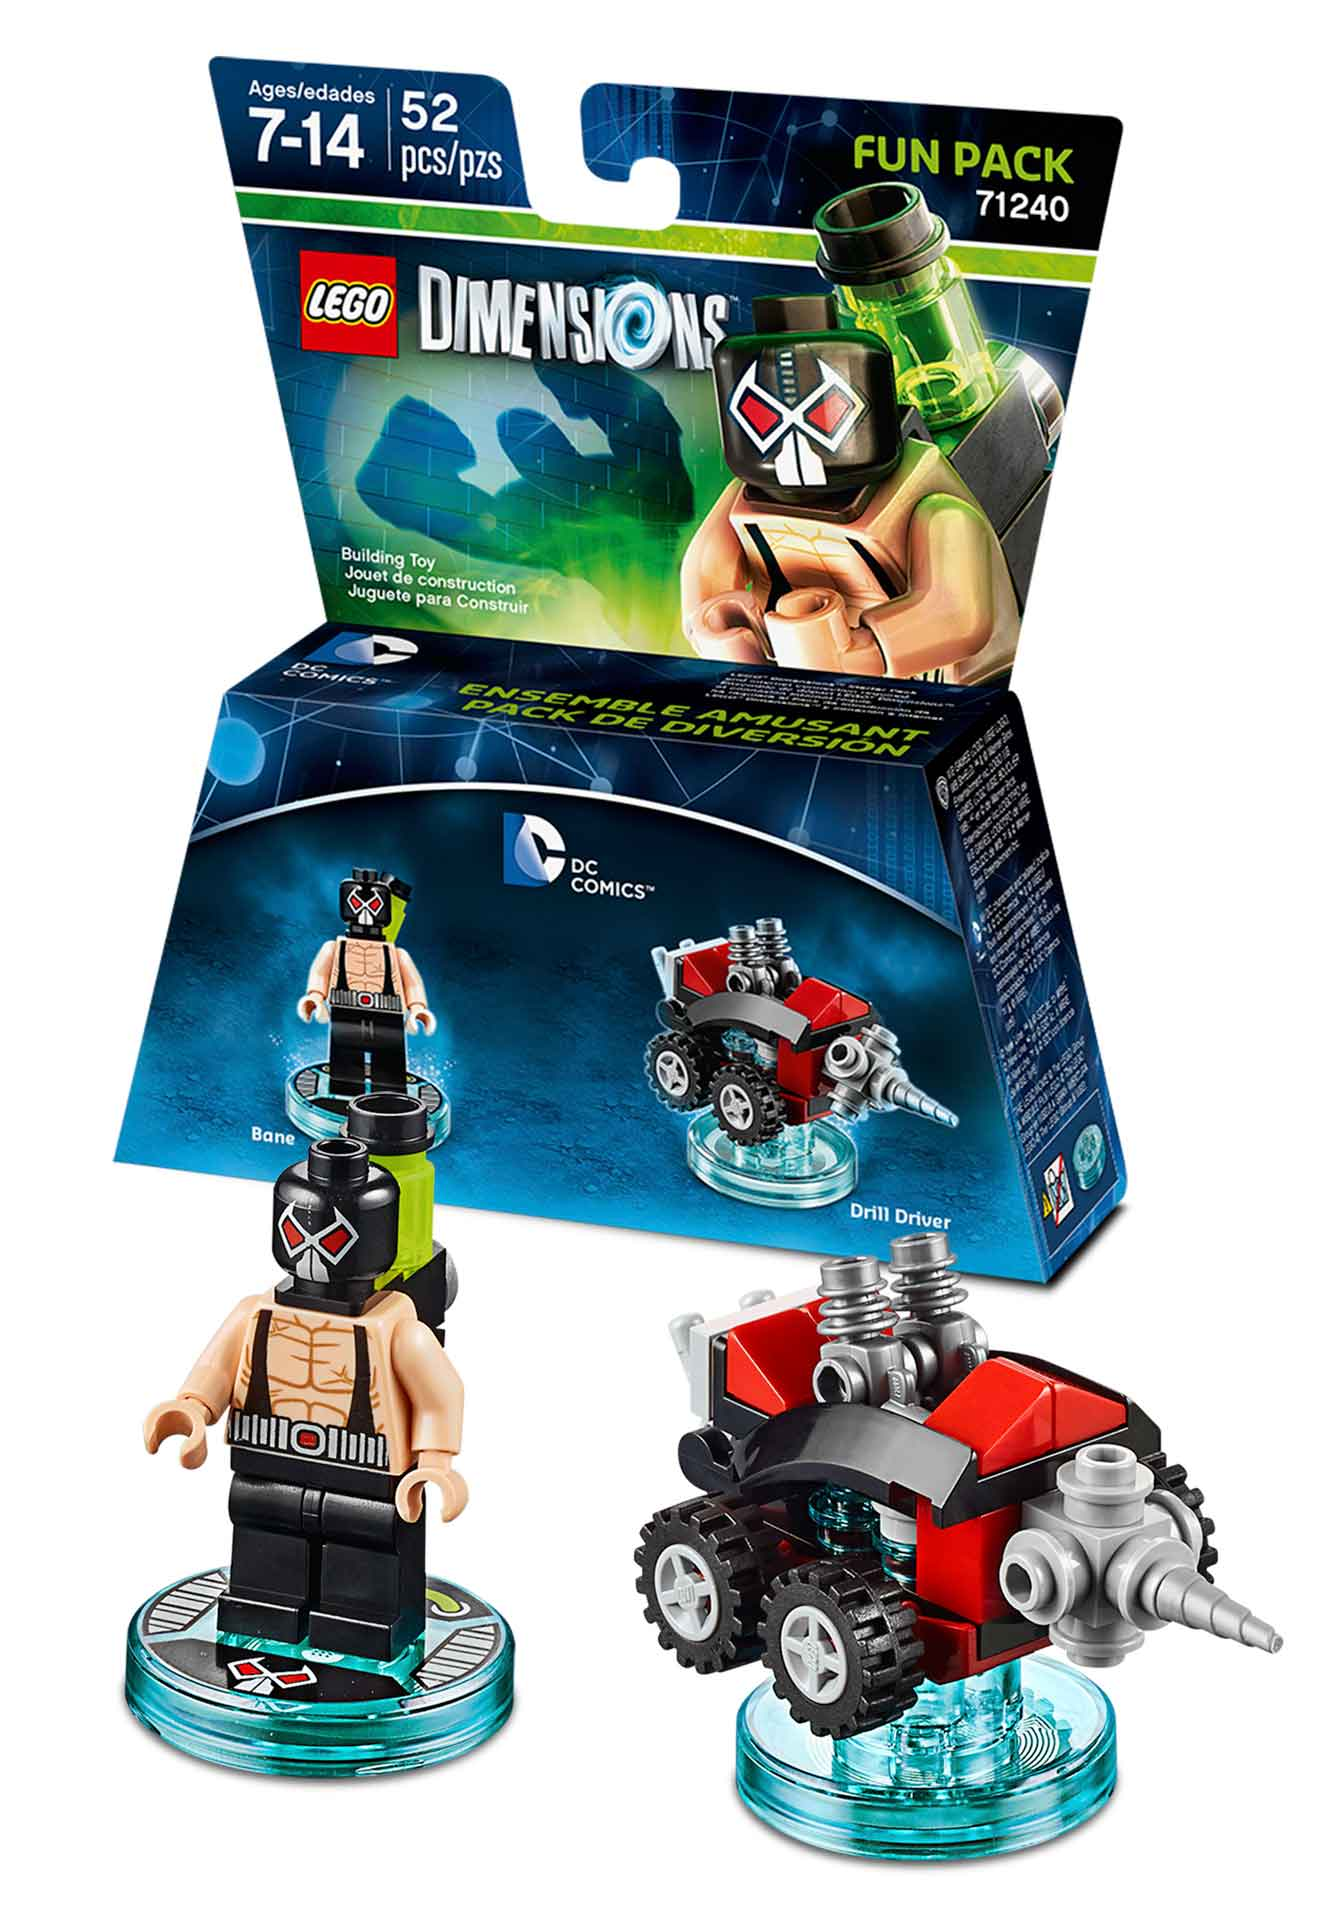 Doc Brown Announces New LEGO Dimensions Figures Including